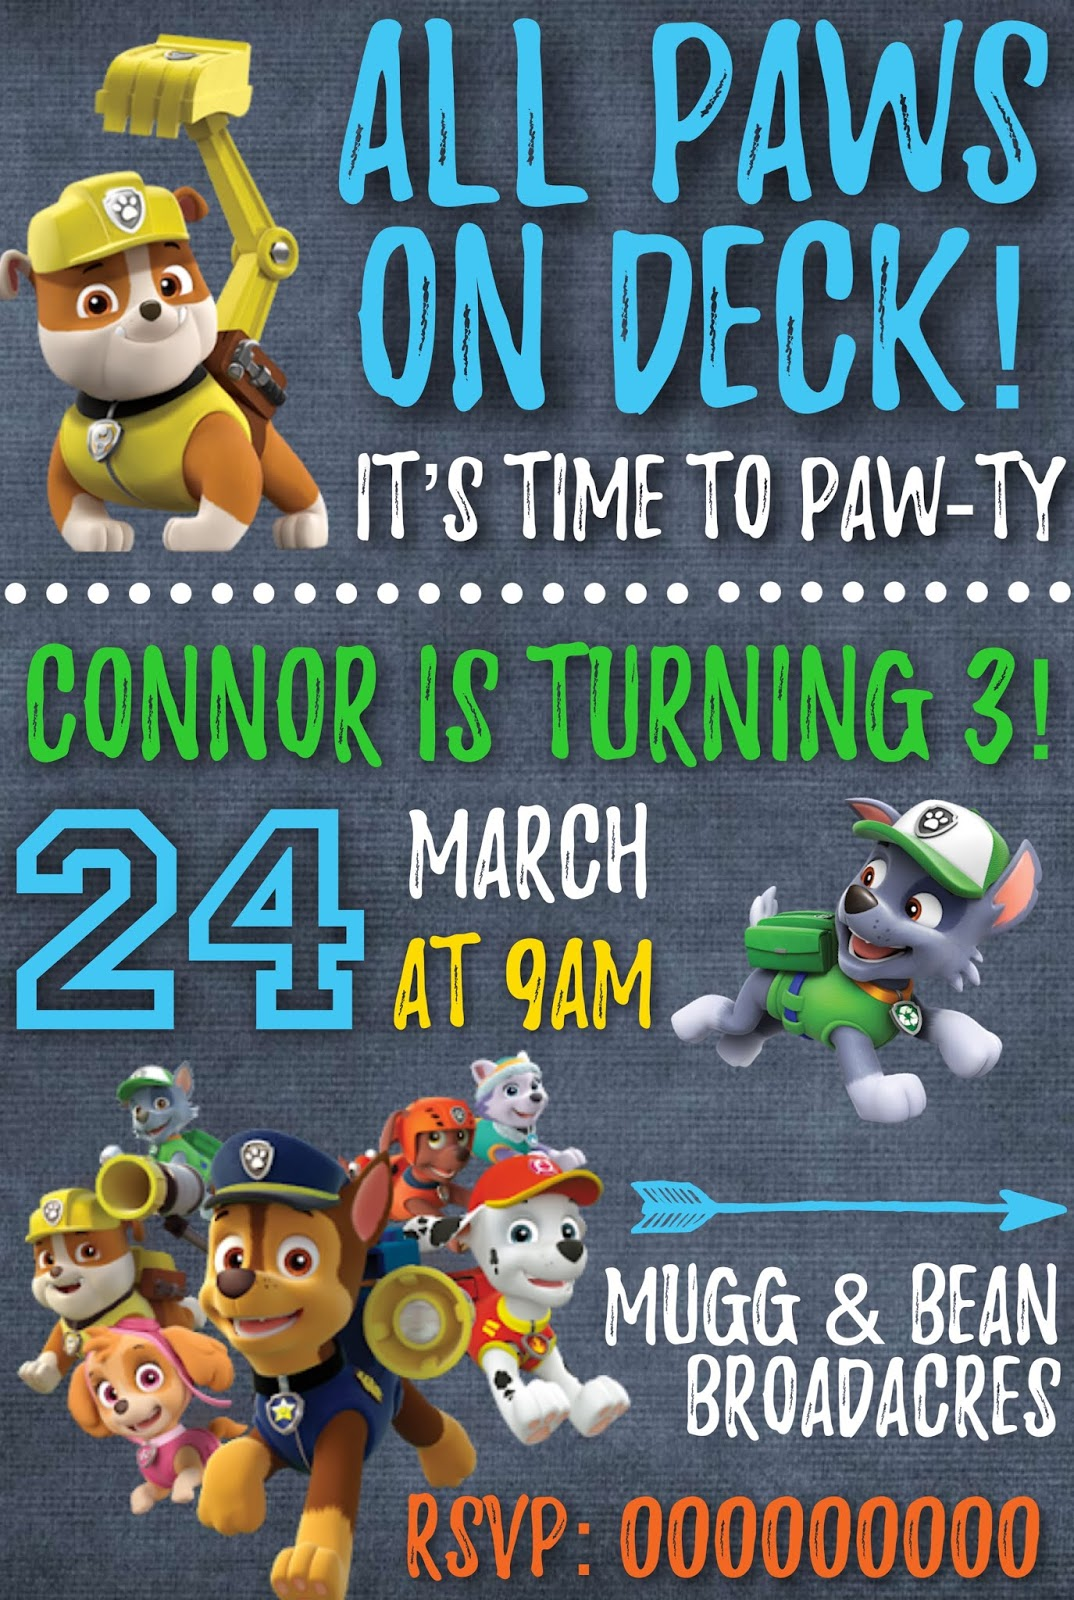 photo about Free Printable Paw Patrol Invitations referred to as Paw Patrol Invite Free of charge Printable